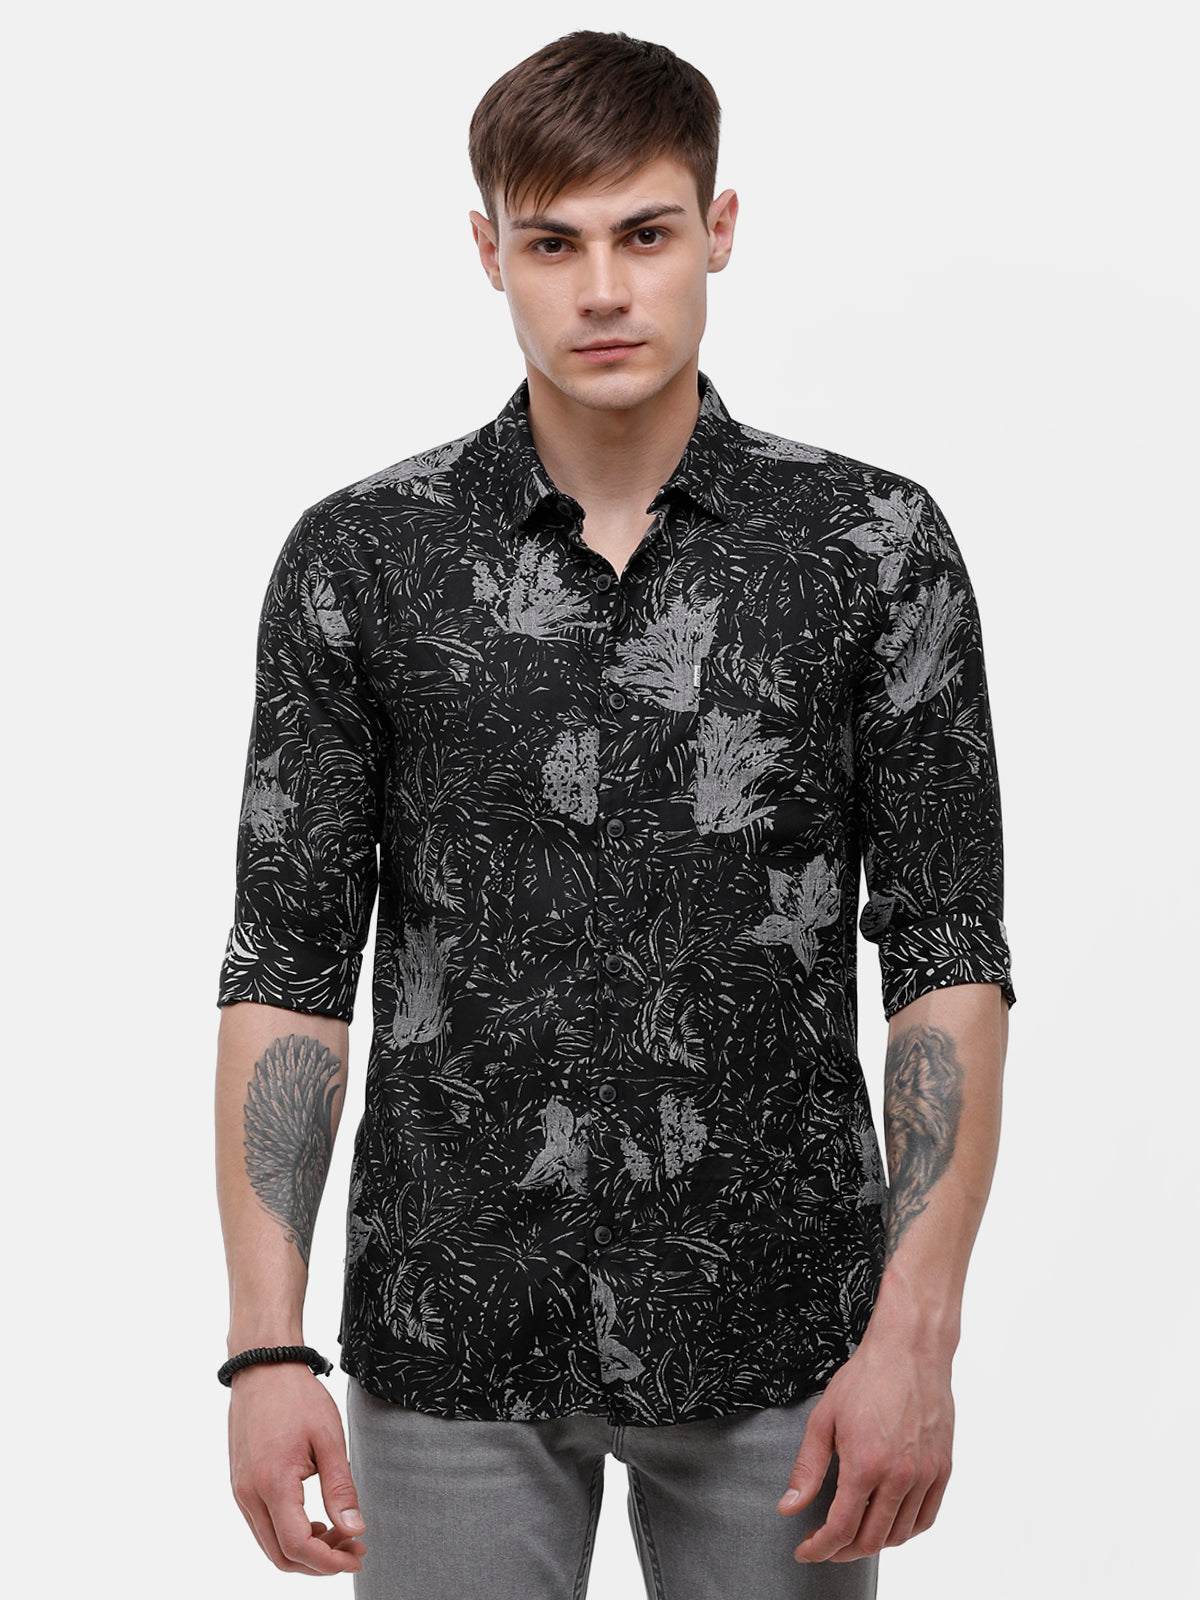 Men's Black and gray floral print casual shirt